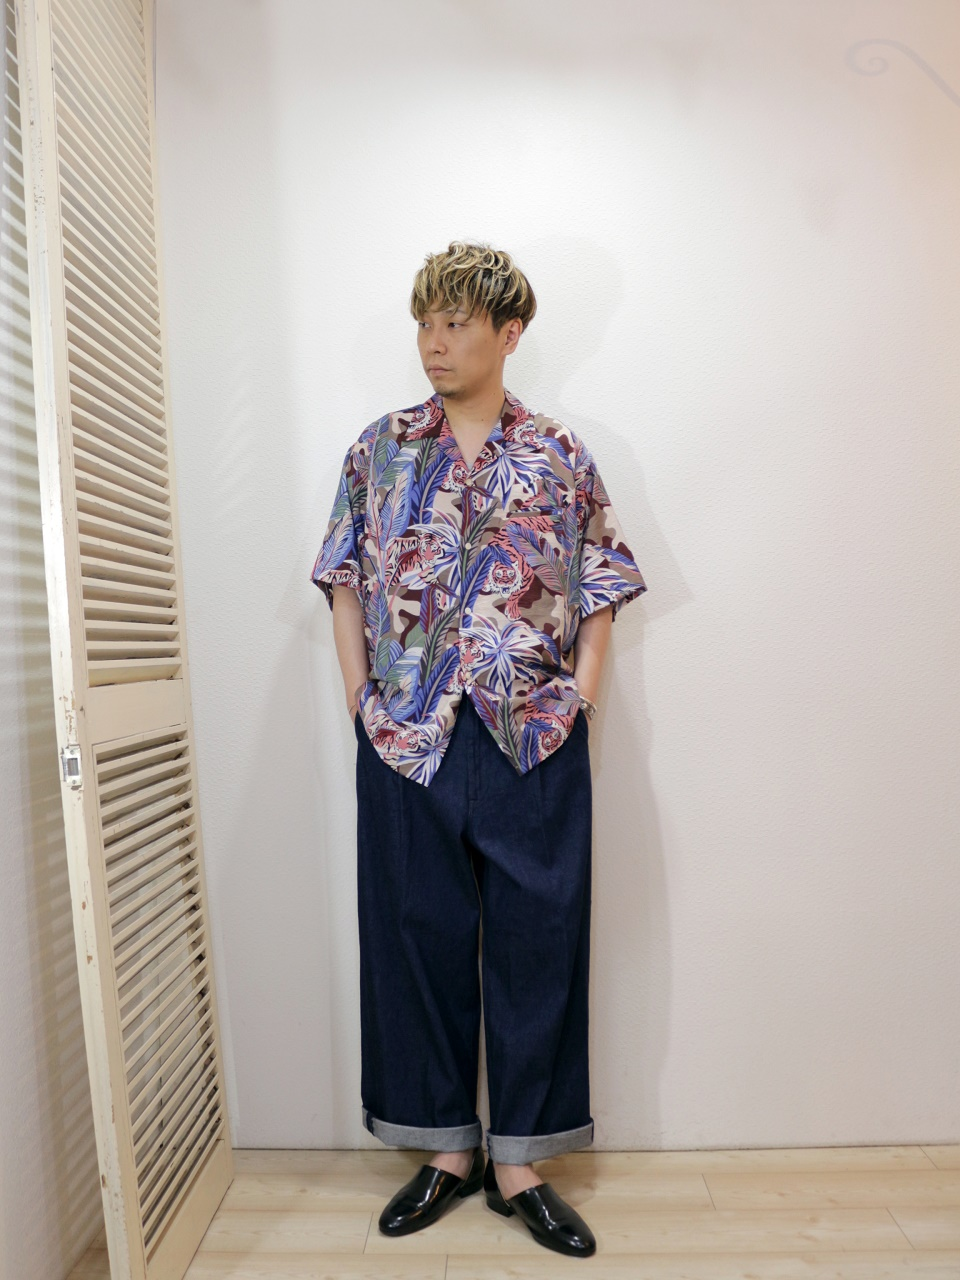 shirt/PENNY'S-HAWAII PRINTED SHIRTS(SIZE M)pants/H.UNIT-Denim crown size tuck trousers(SIZE 1)を使ったコーディネート